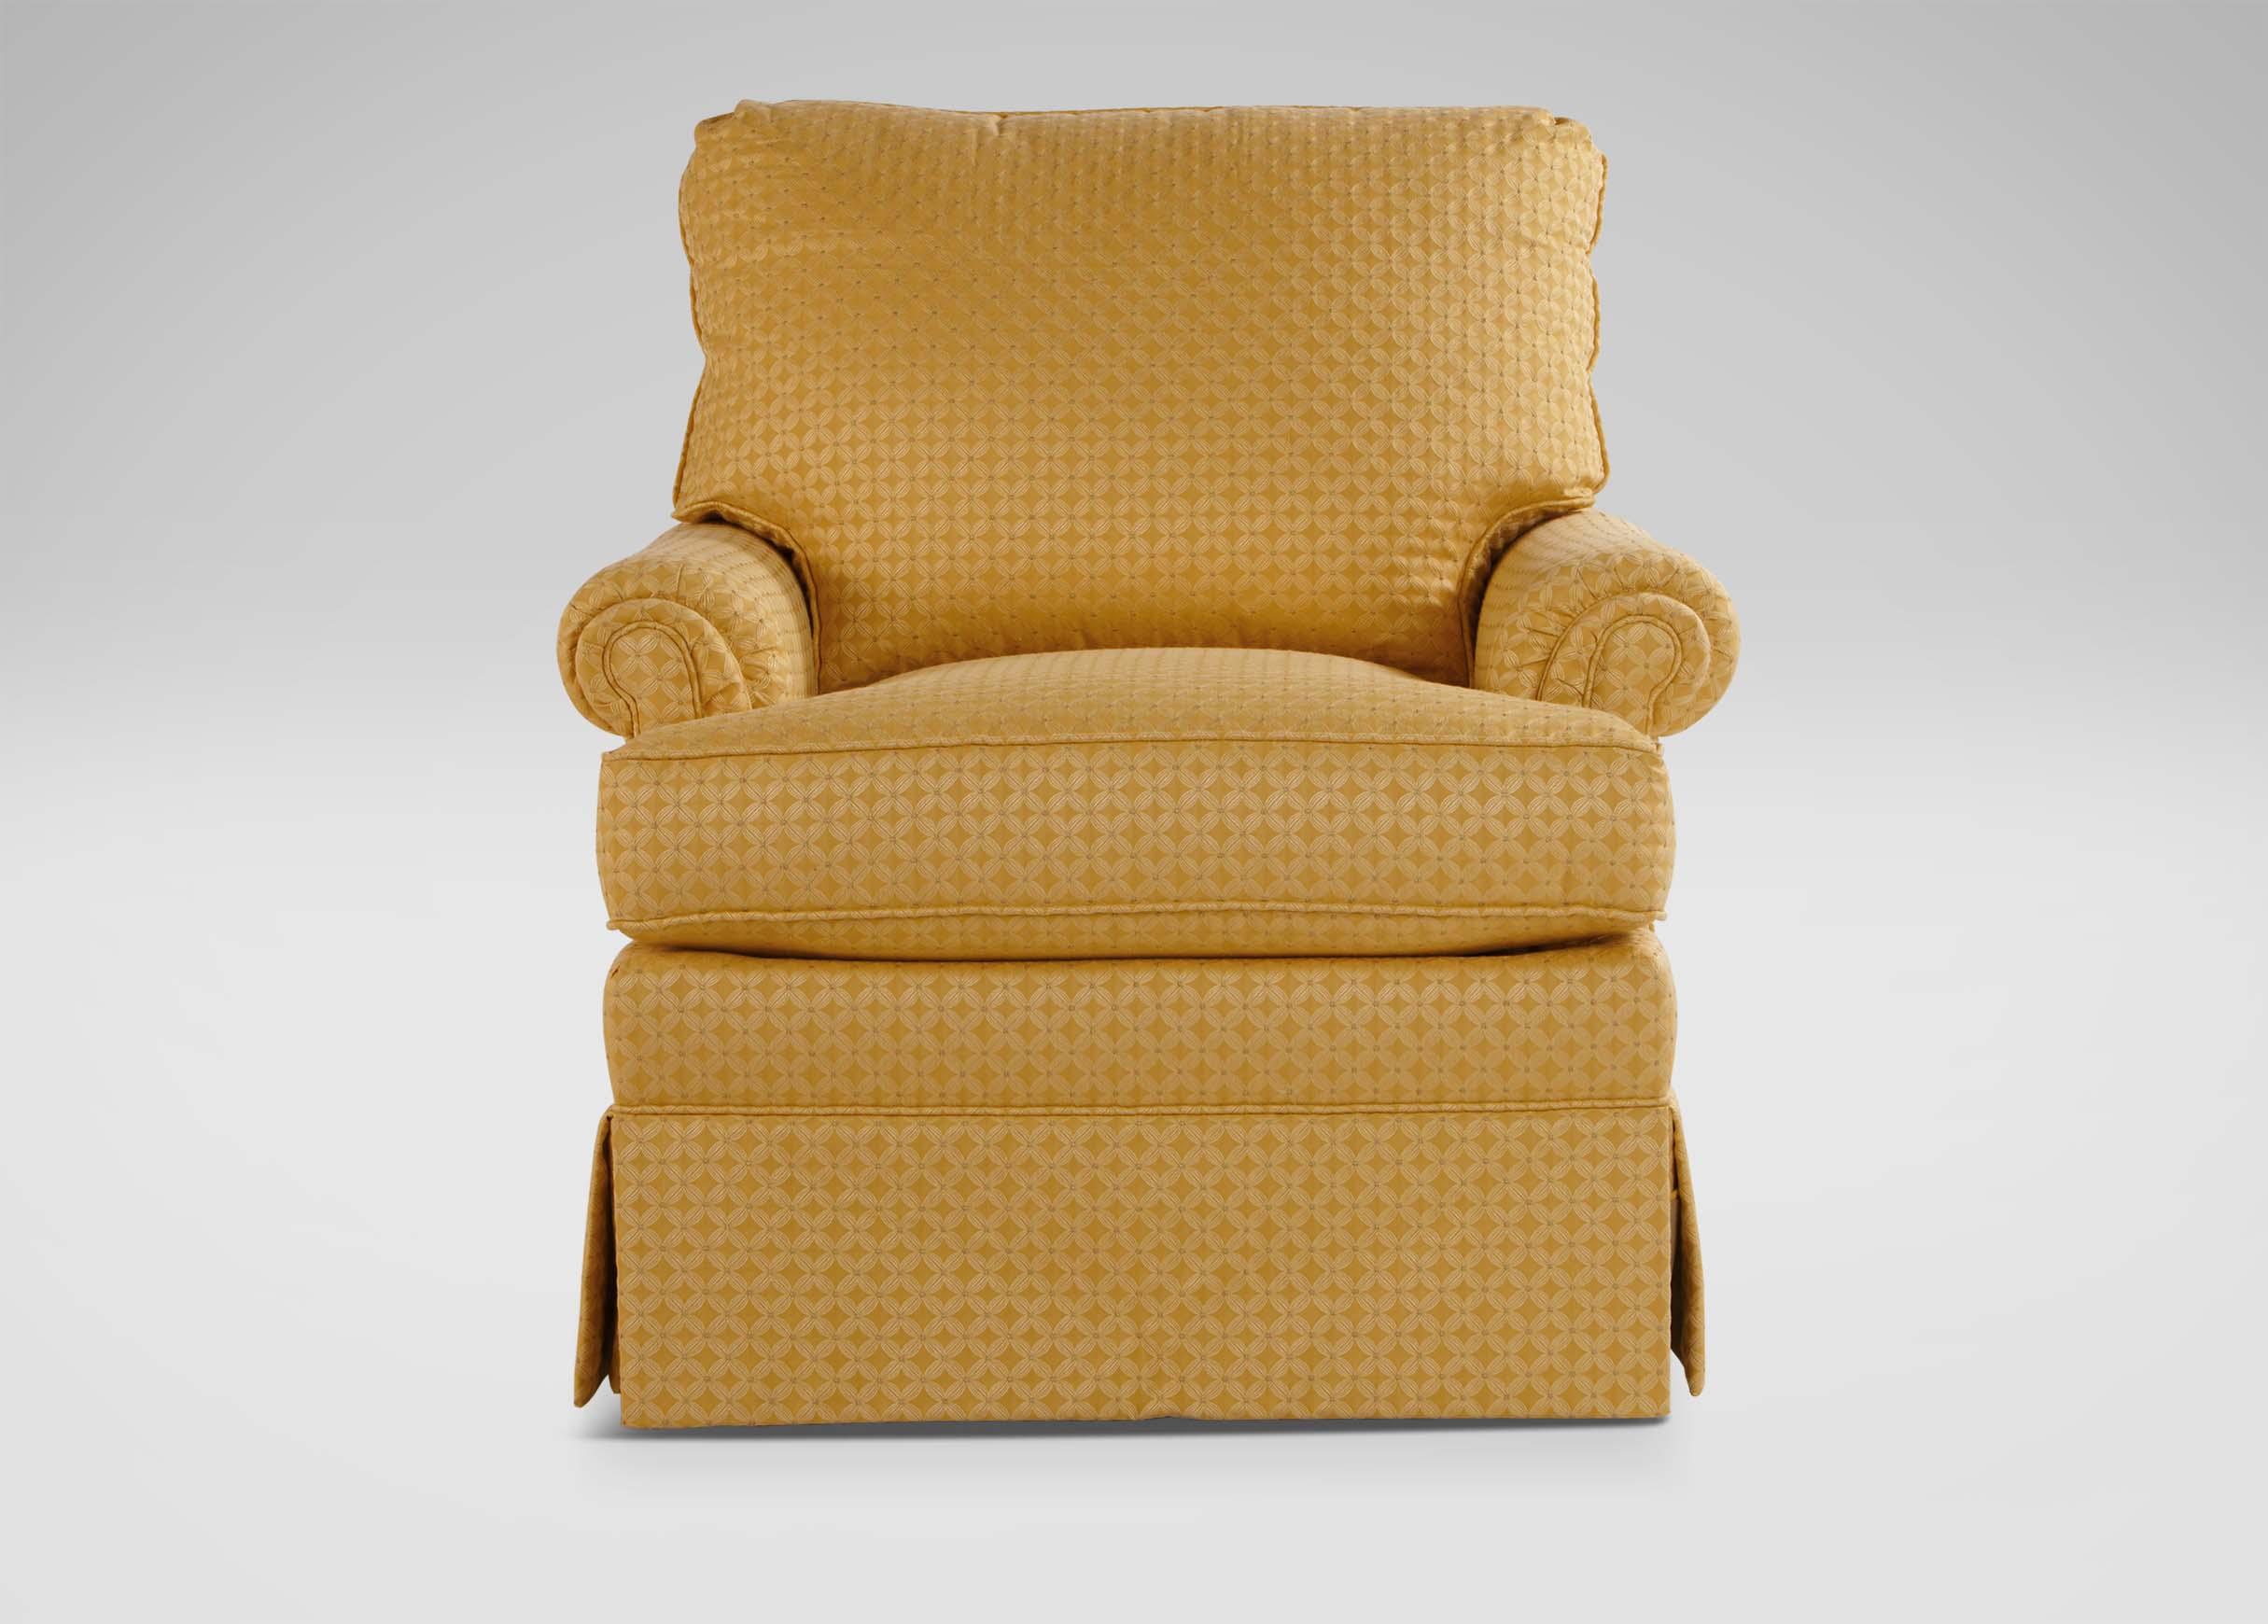 room furniture yes snuggle plush swivel please for from pin chair living chairs